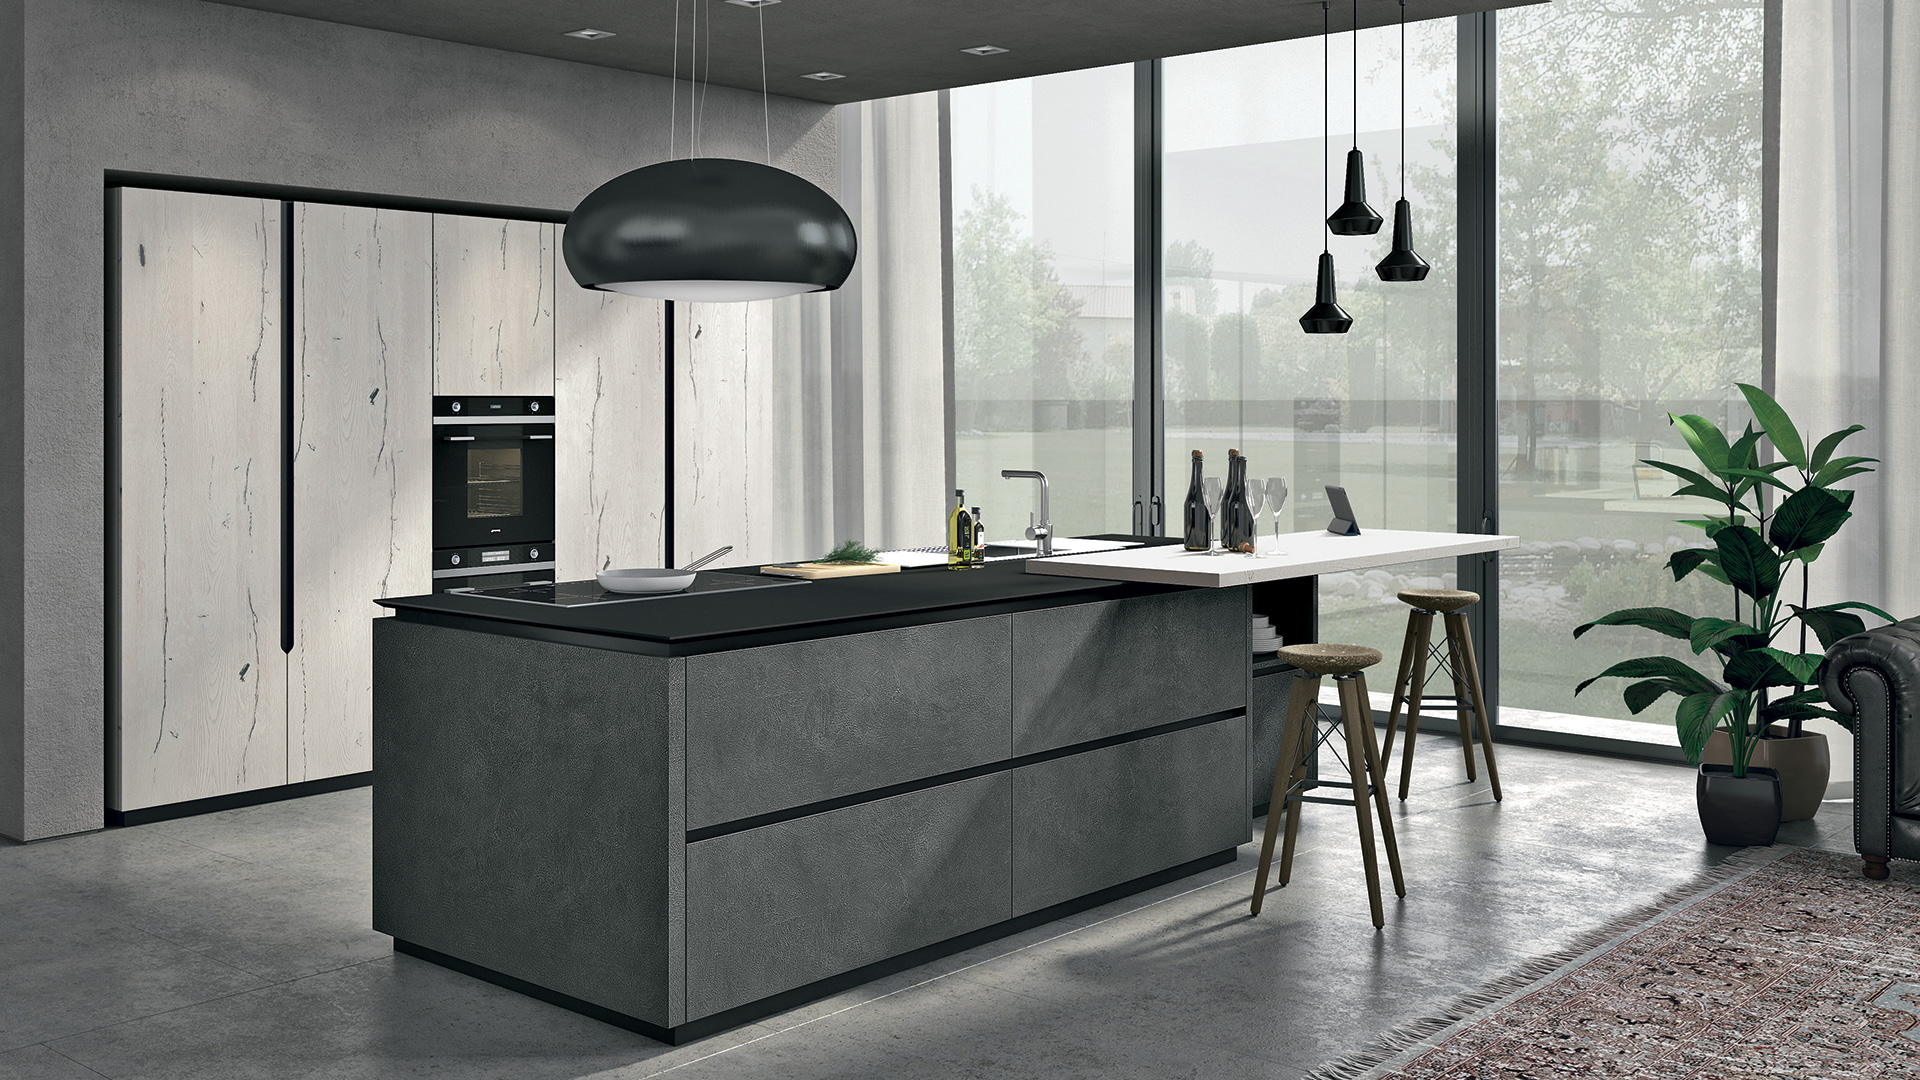 Oltre - Modern Kitchens - Lube Official Website